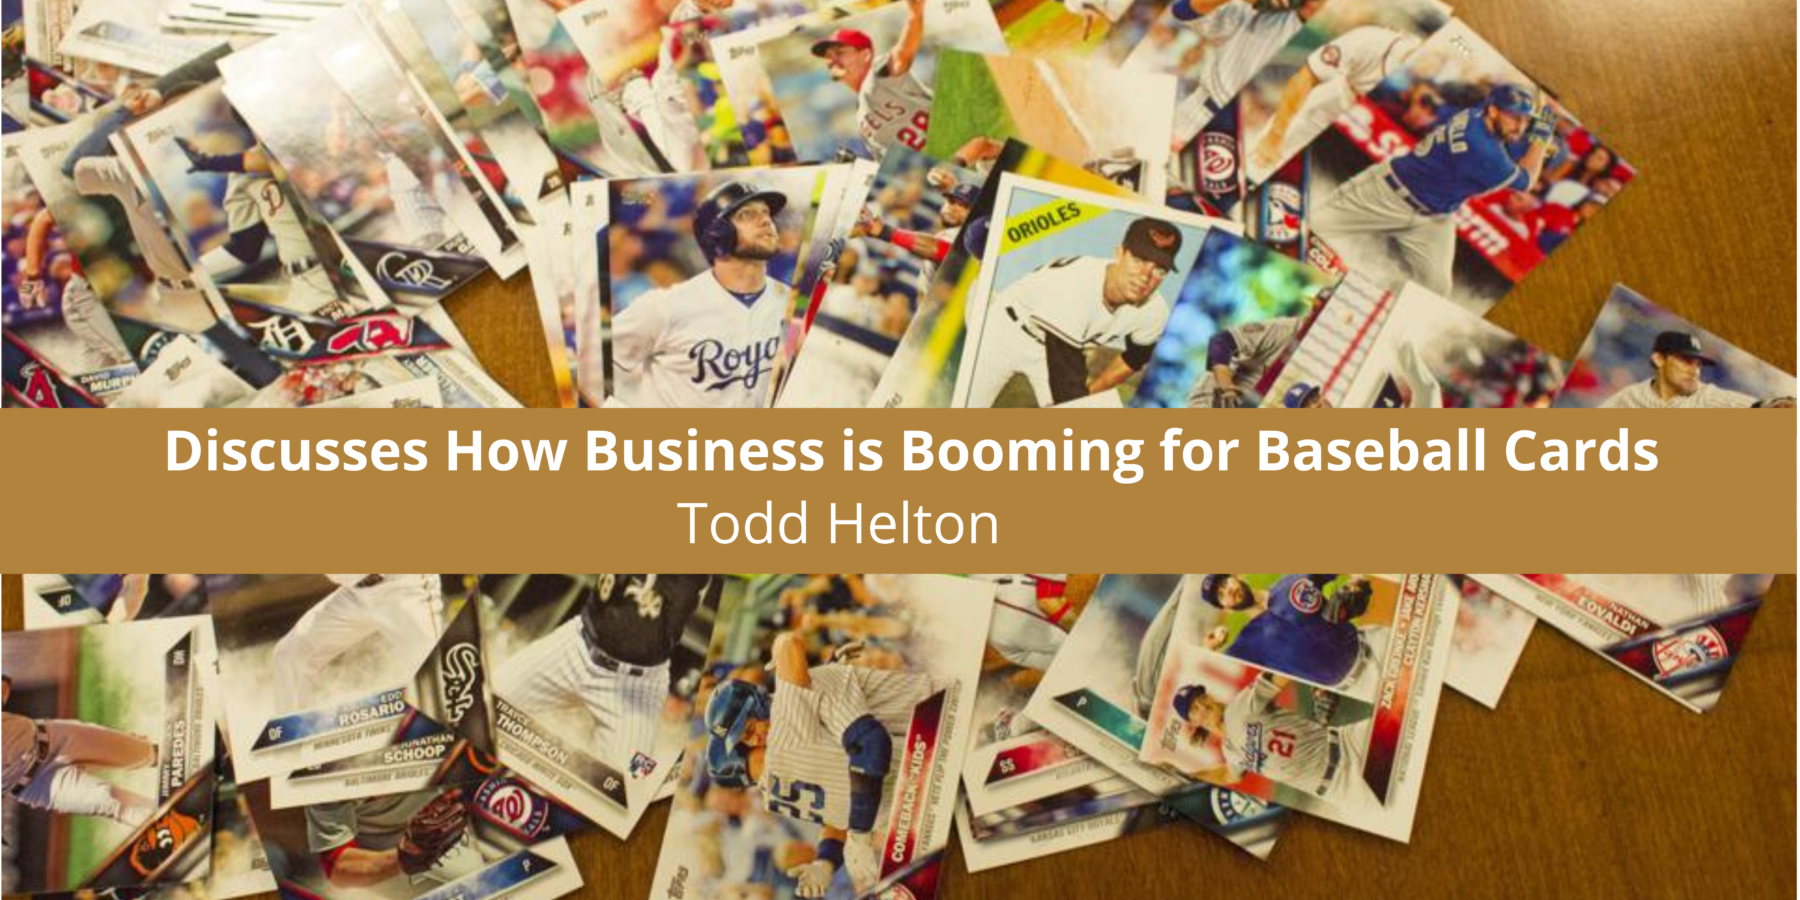 Todd Helton Discusses How Business is Booming for Baseball Cards